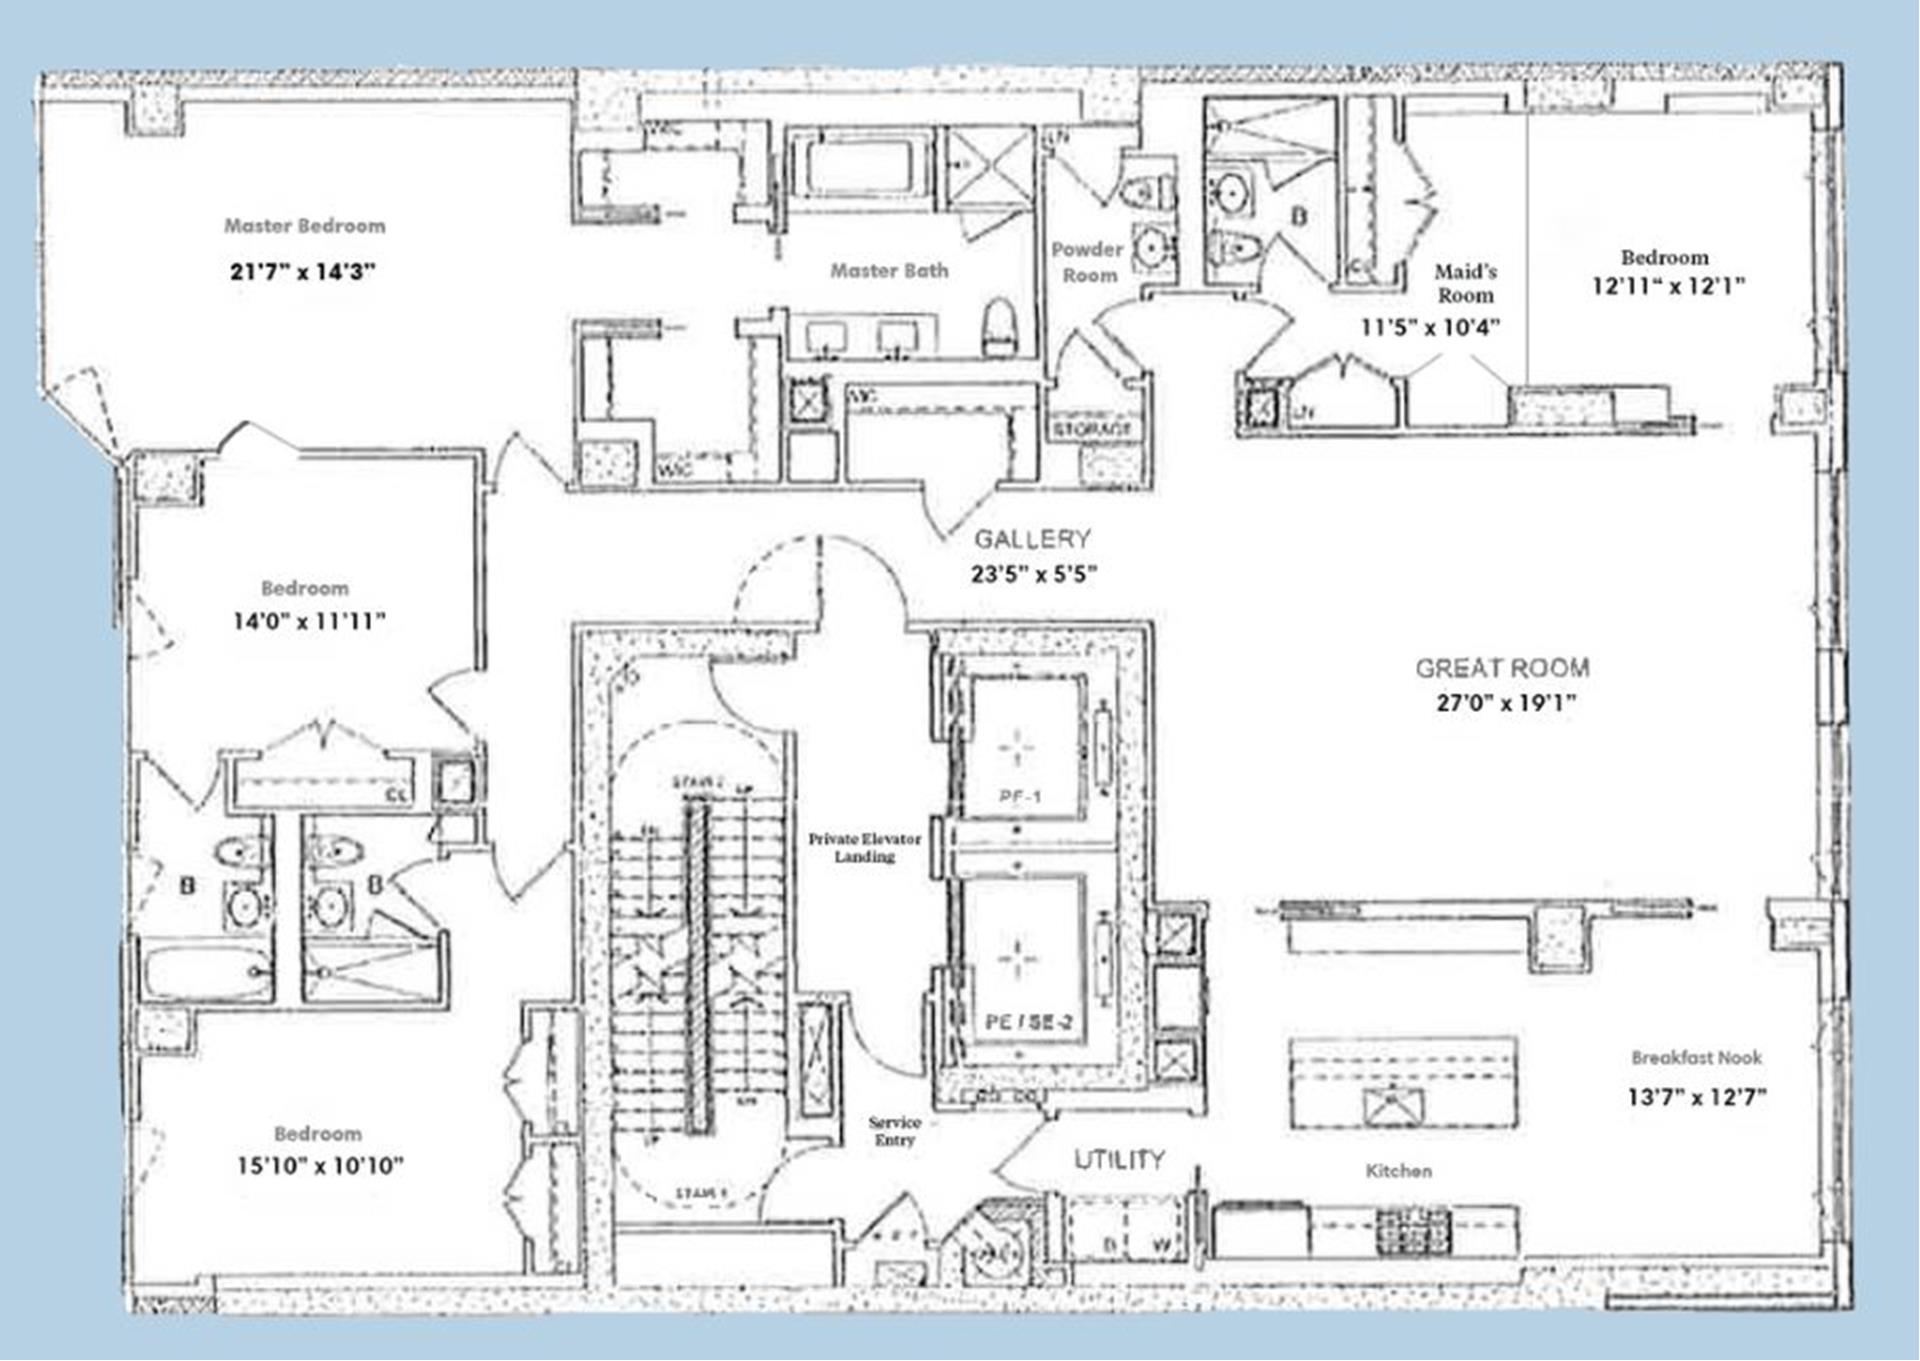 Floor plan of The Charles, 1355 First Avenue, 6FL - Upper East Side, New York